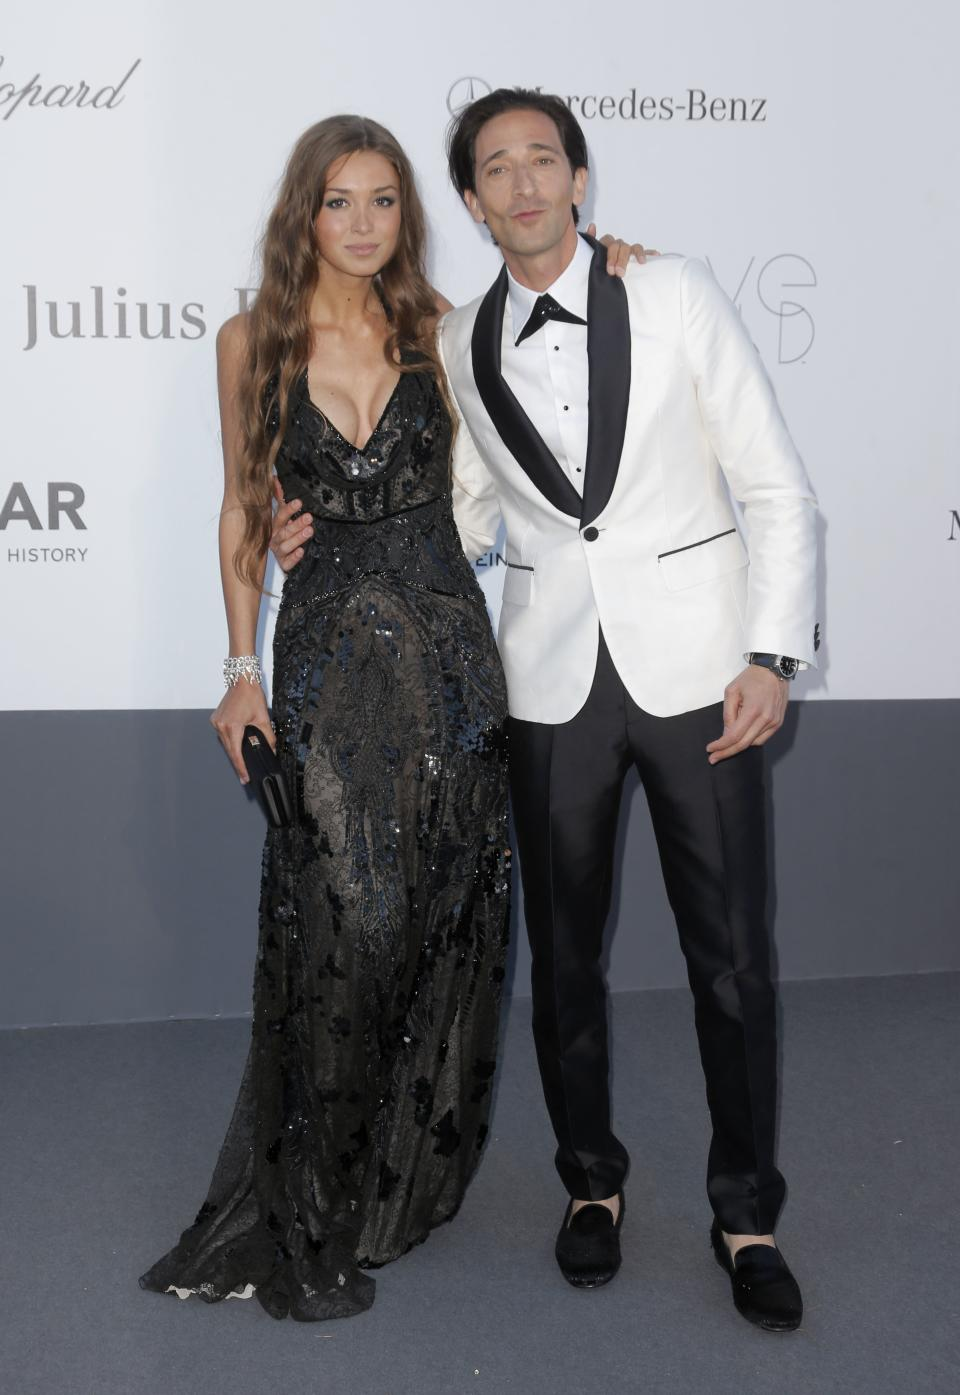 Lara Lieto and Adrien Brody arrive at amfAR Cinema Against AIDS benefit at the Hotel du Cap-Eden-Roc, during the 66th international film festival, in Cap d'Antibes, southern France, Thursday, May 23, 2013. (Photo by Todd Williamson/Invision/AP)